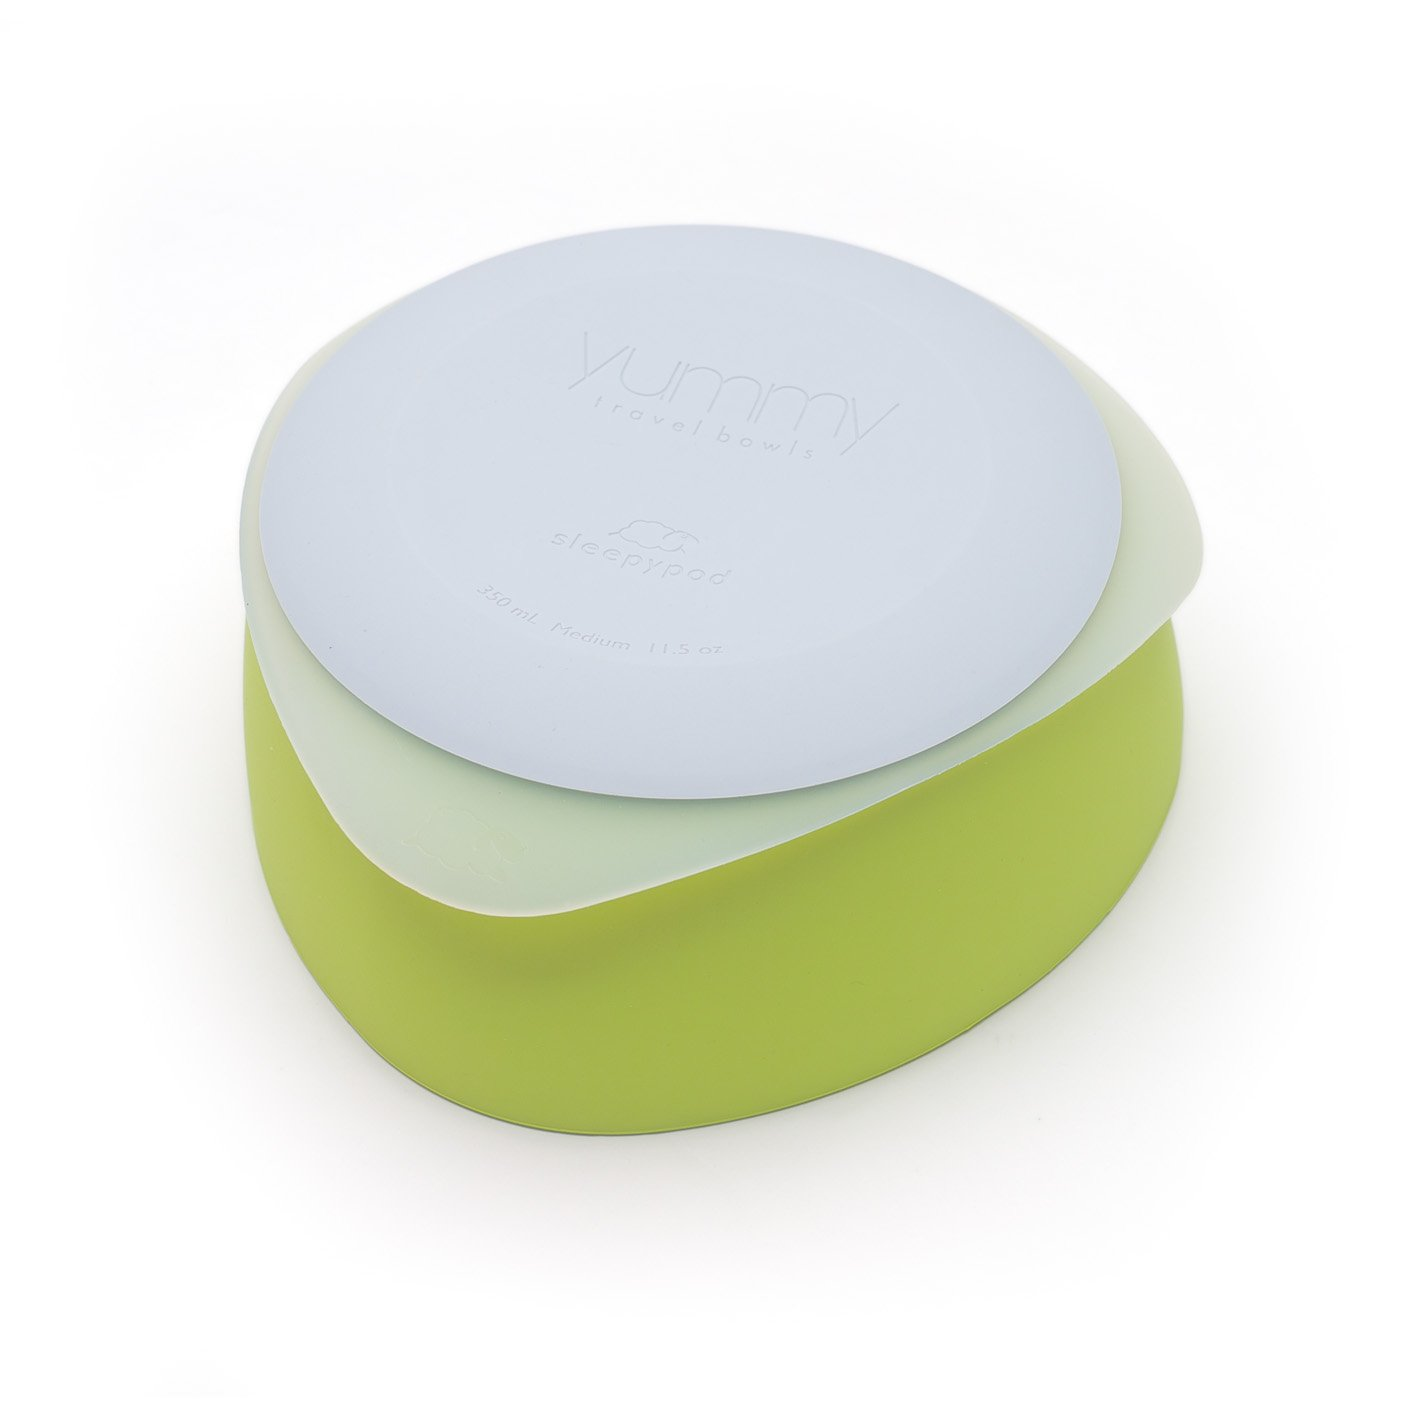 Yummy Pet Travel Dog Bowls - Key Lime - Medium by Sleepypod